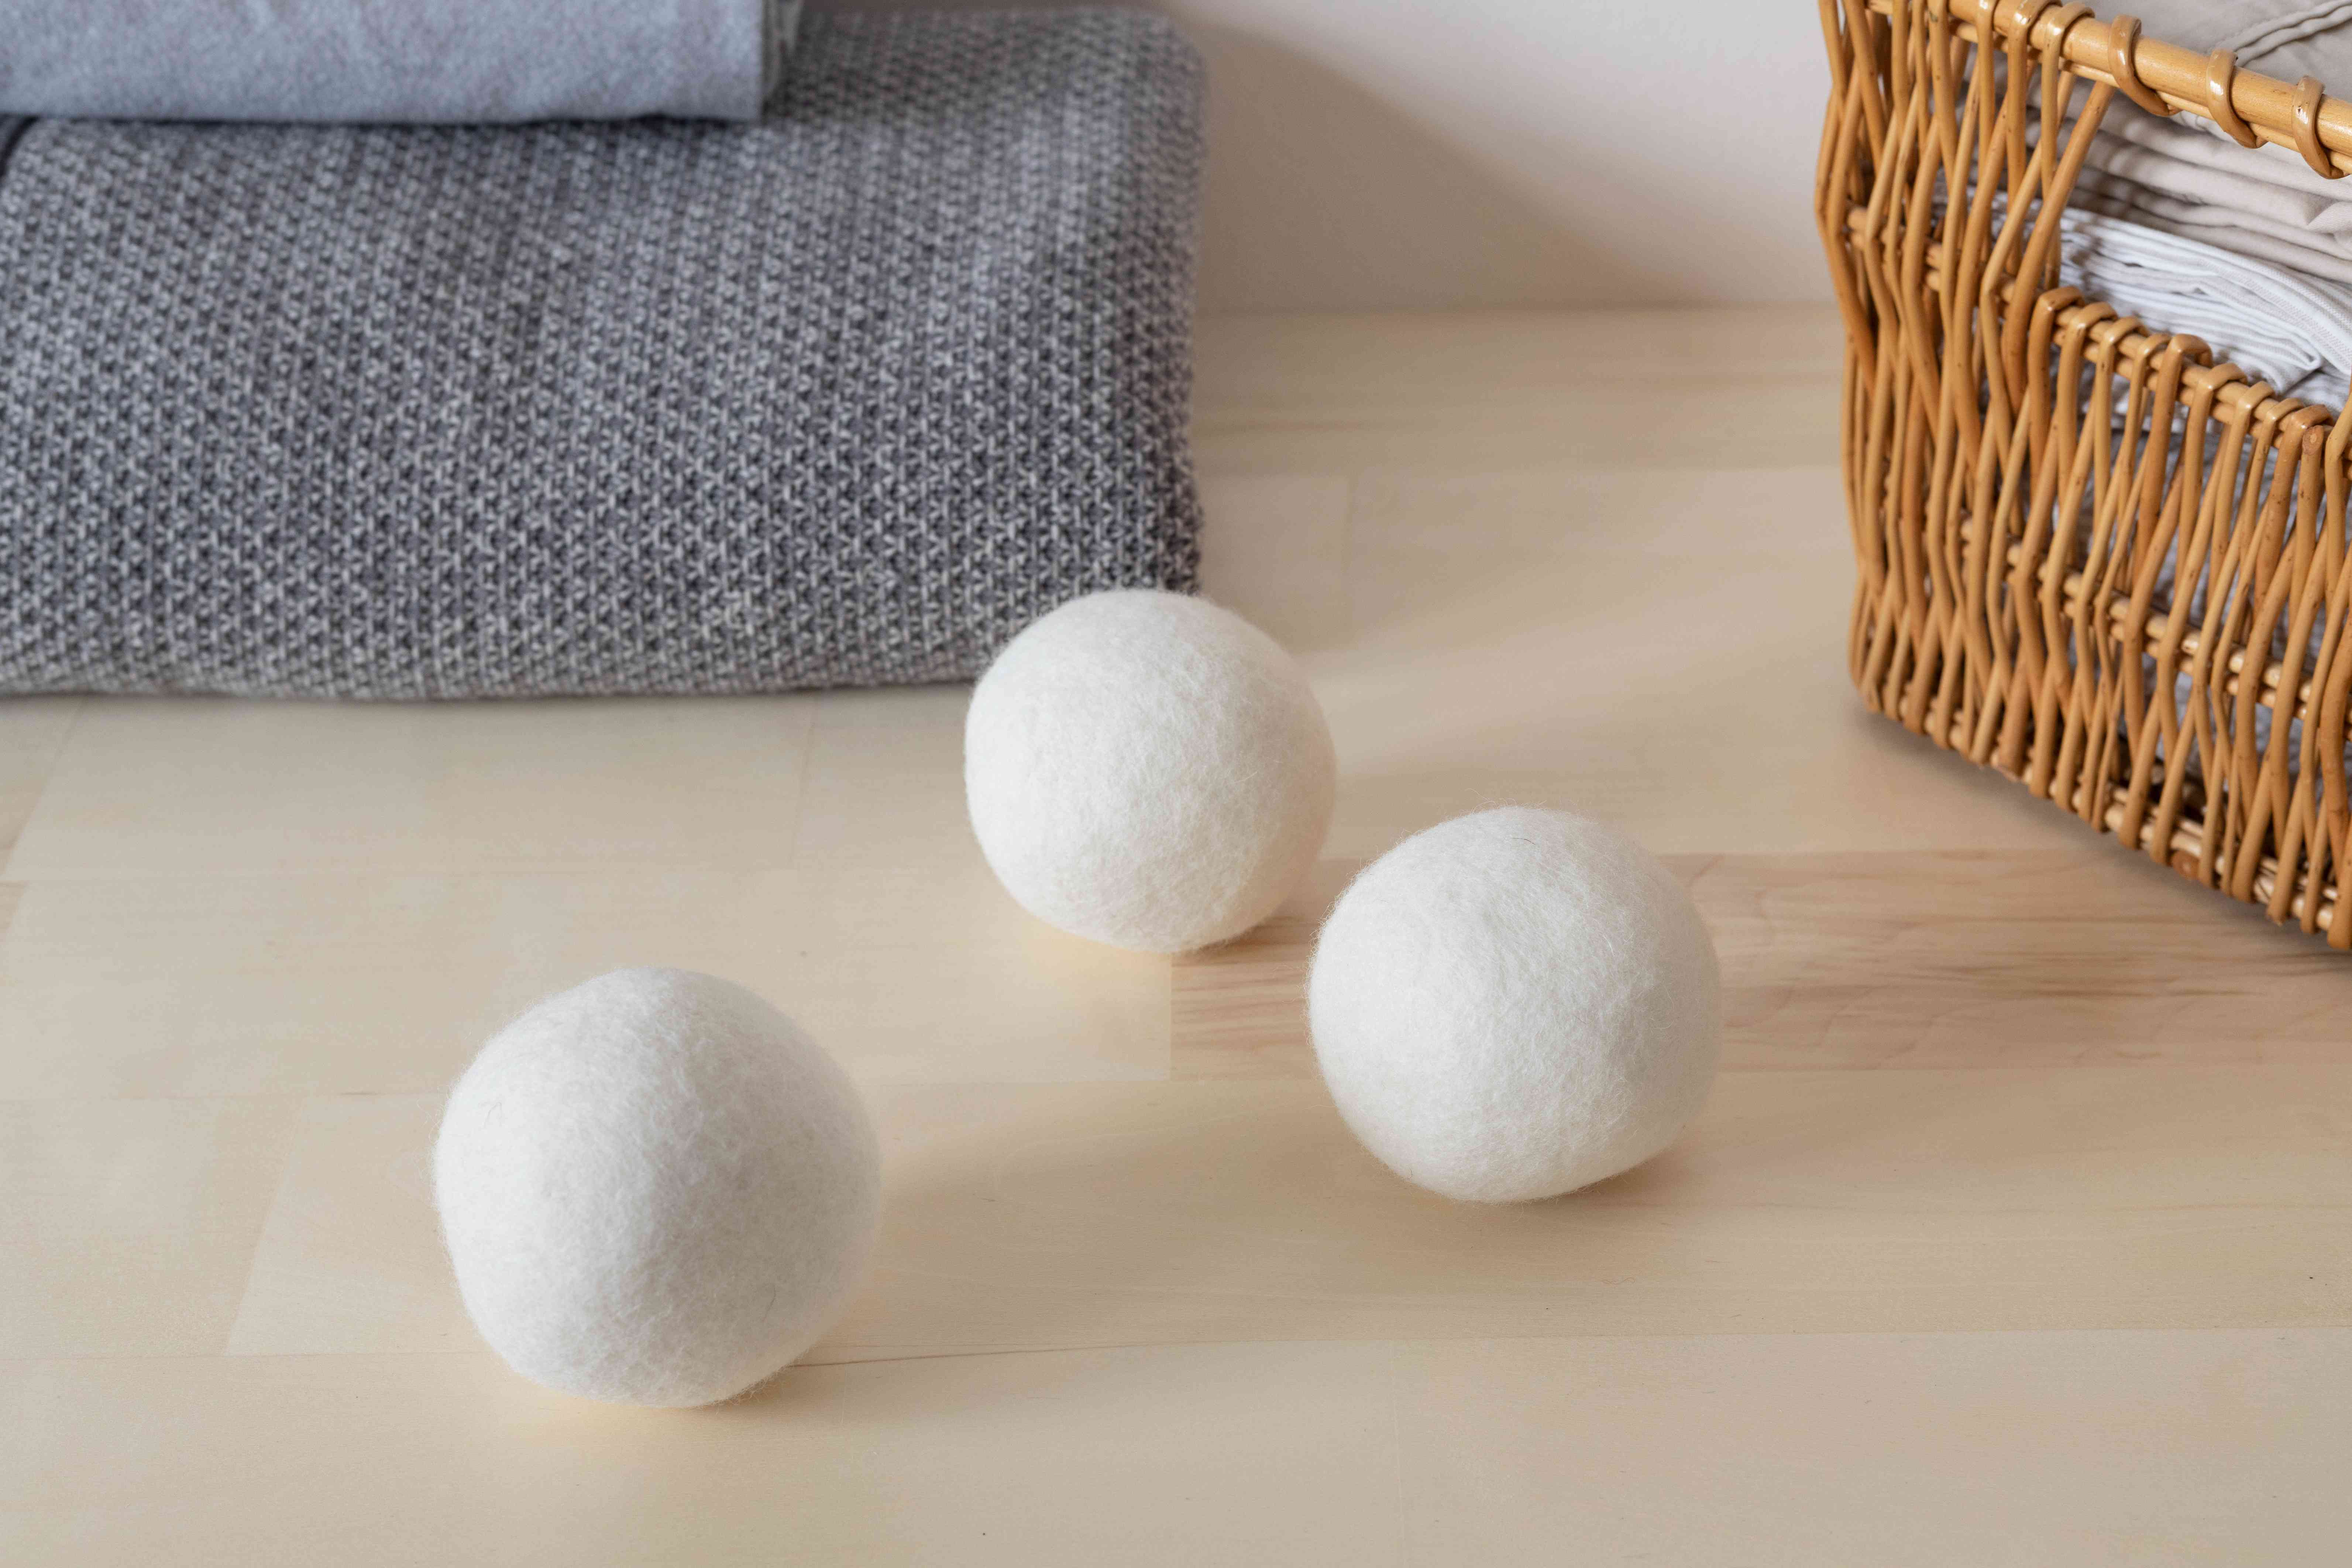 Dryer balls next to folded clothing and wicker basket